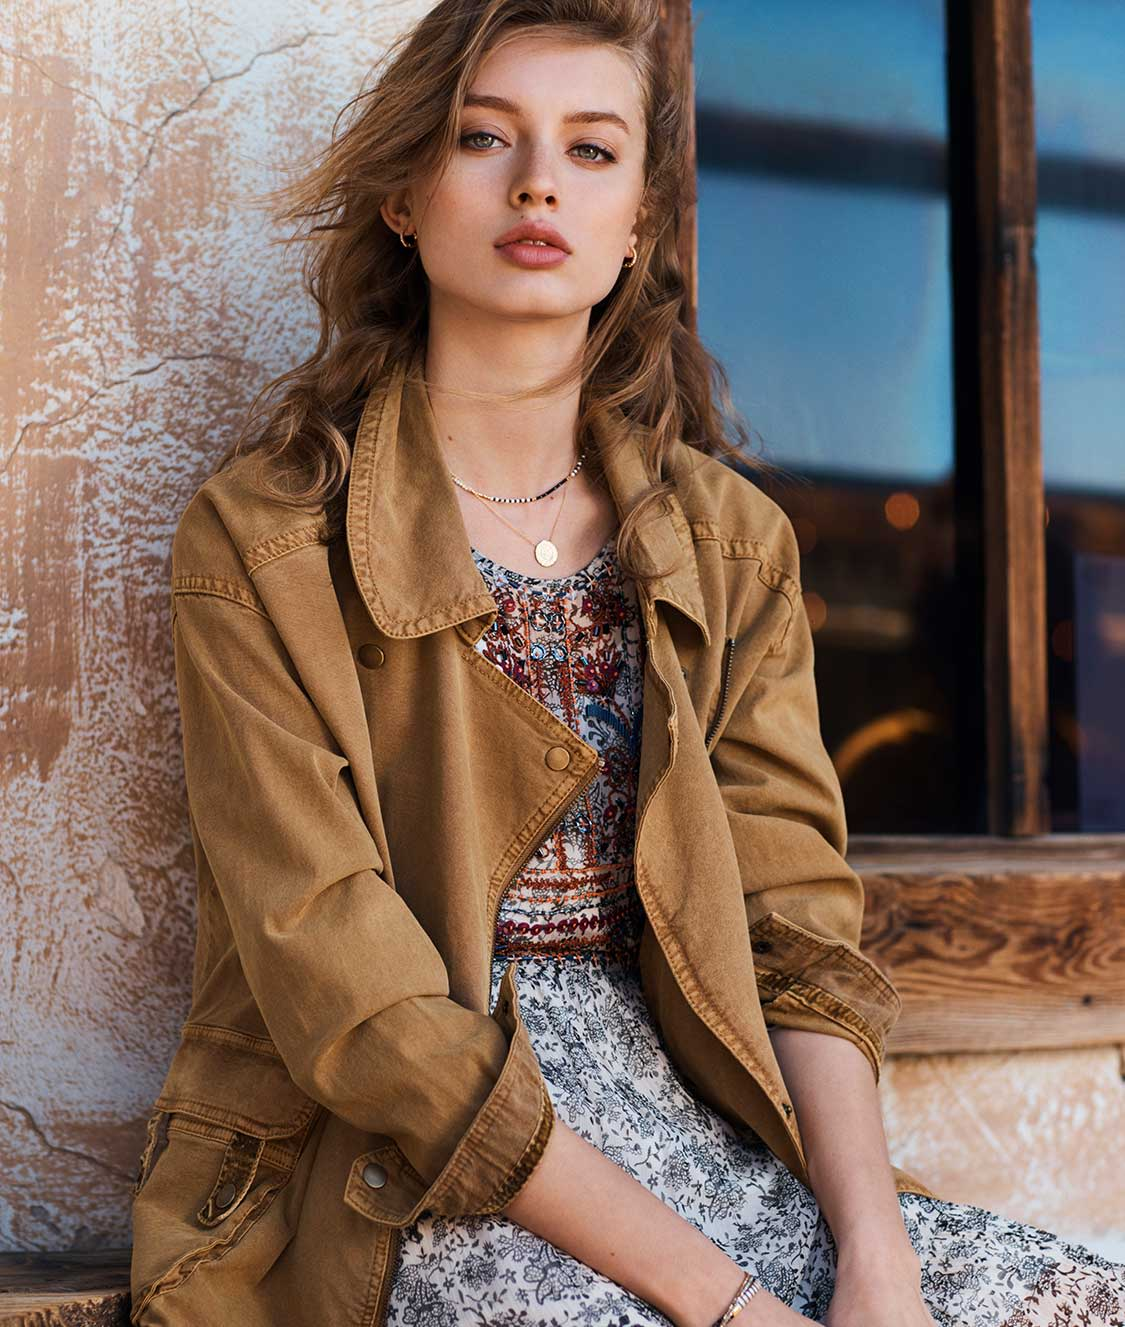 Anthropologie - Women's Clothing, Accessories & Home